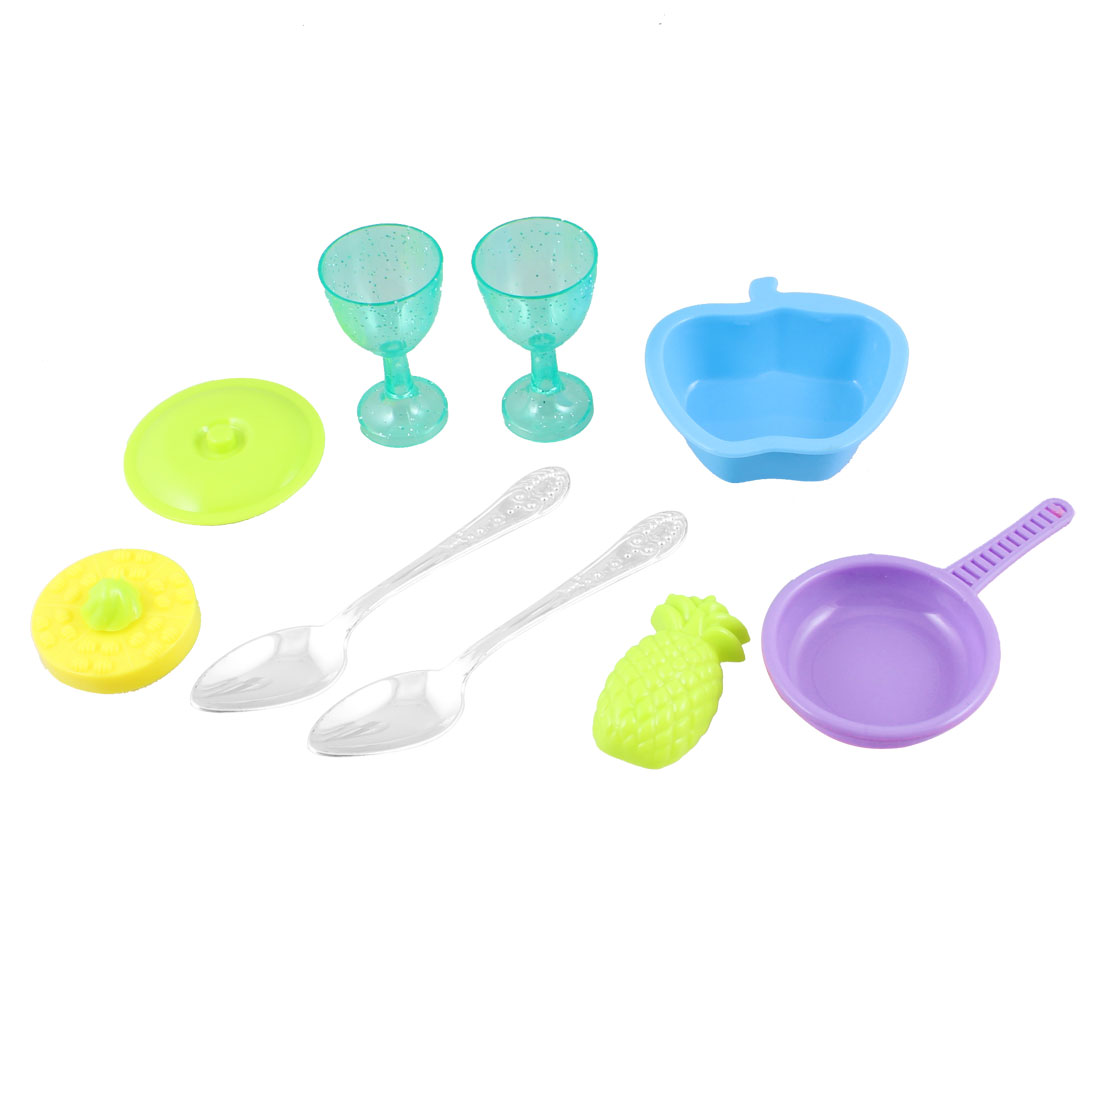 9 in 1 Plastic Kitchen Tool Set Toy Green Pineapple Silver Tone Spoon